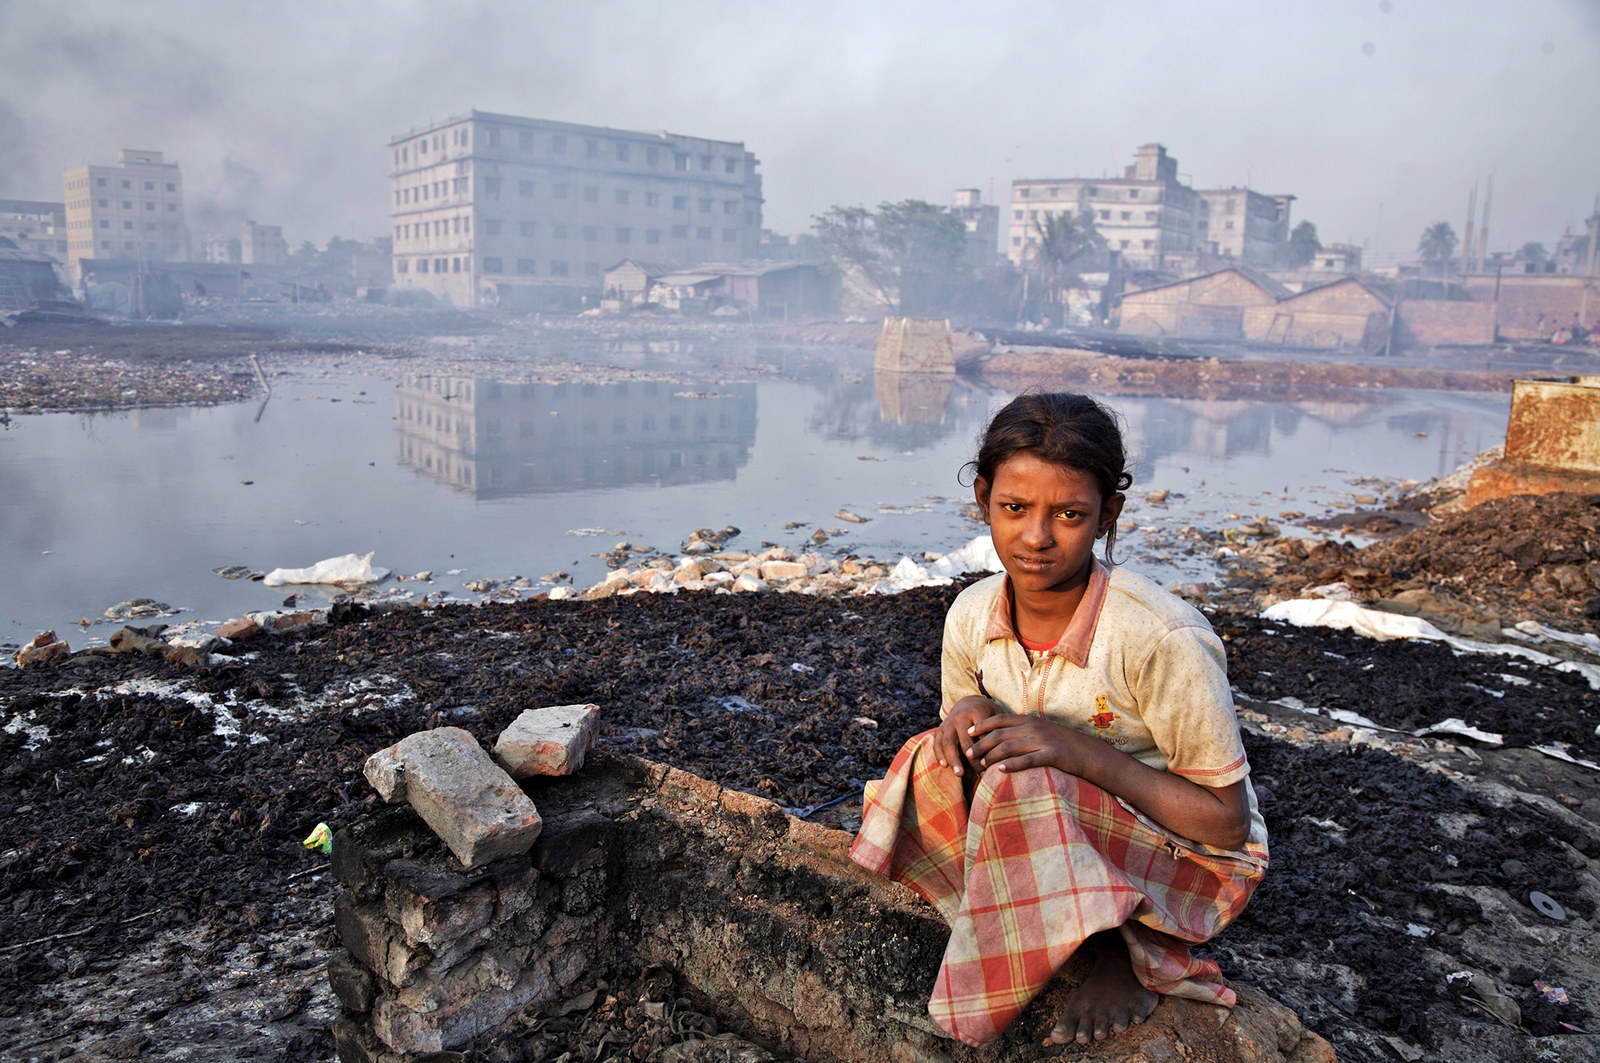 A young girl sits on the broken wall of a glue factory on Feb. 20, 2007, by the side of the Buriganga River in Dhaka, Bangladesh.